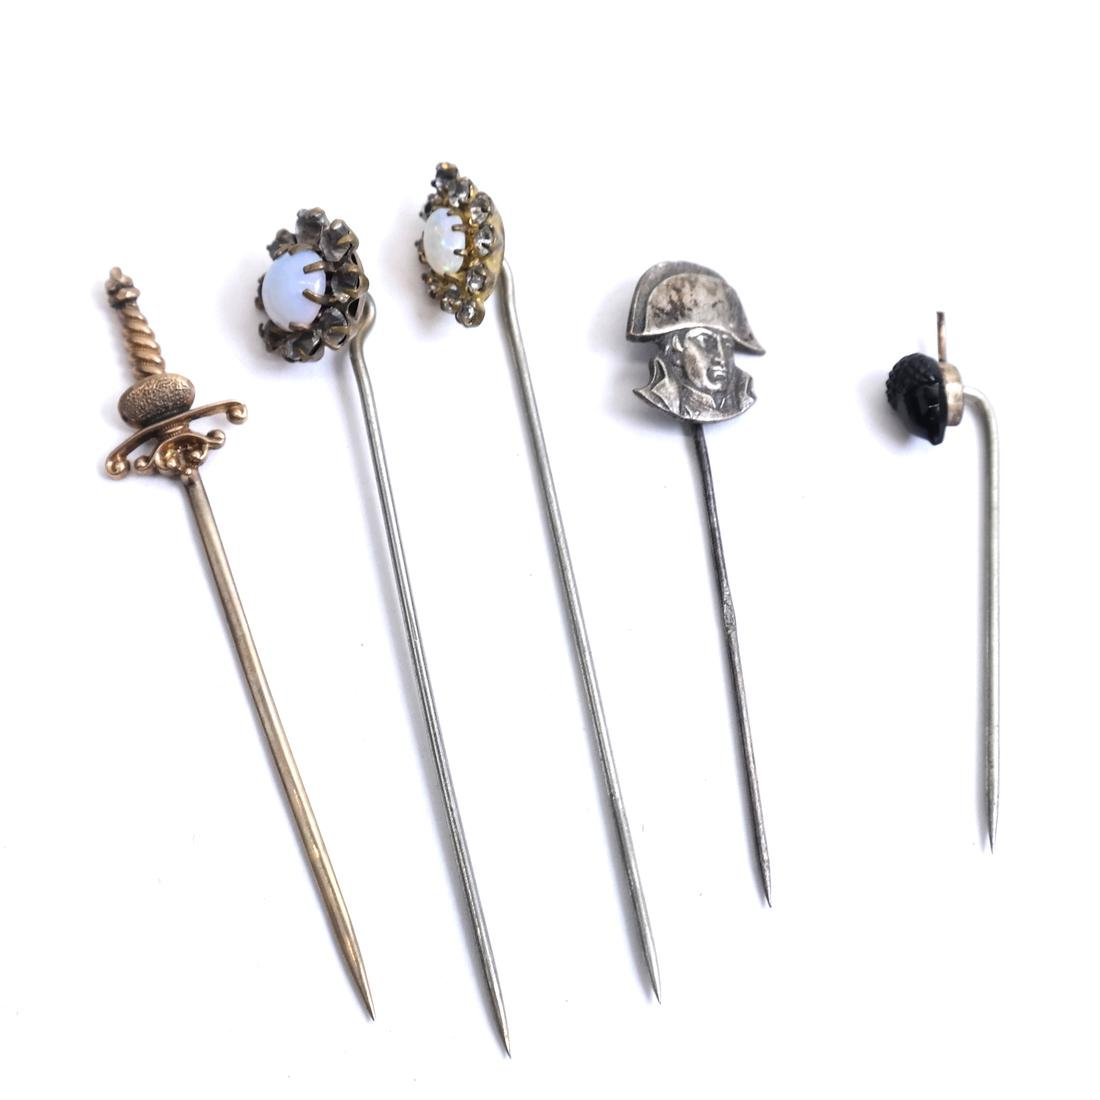 Group of 11 Pins - 3